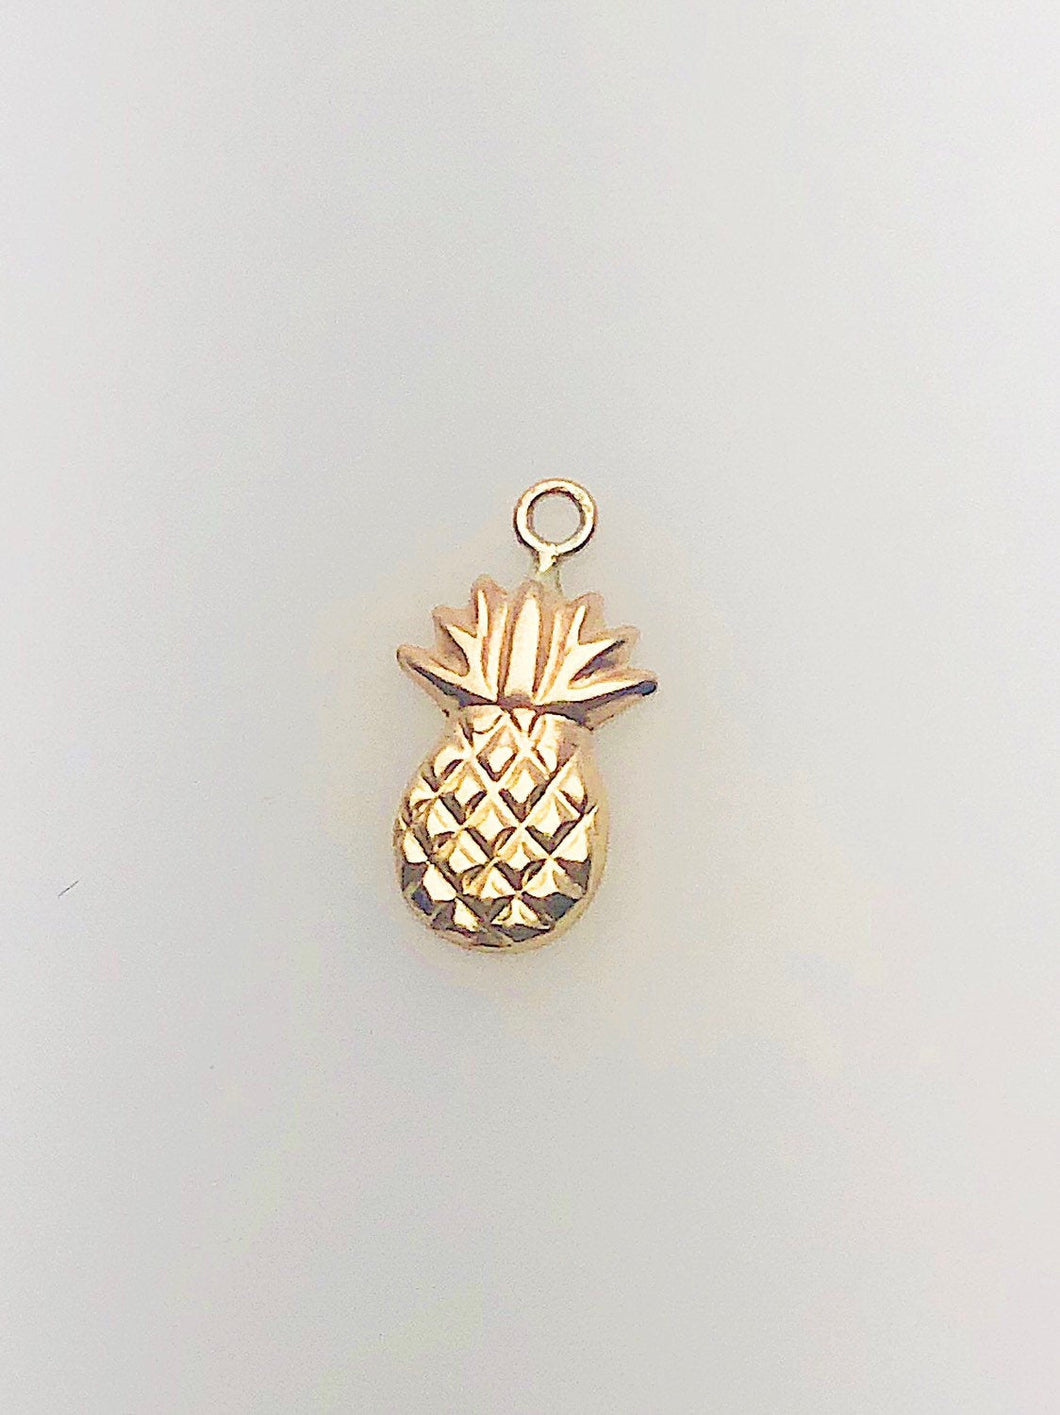 14K Gold Fill Pineapple Charm w/ Ring, 7.0x12.7mm, Made in USA - 1161 J/R